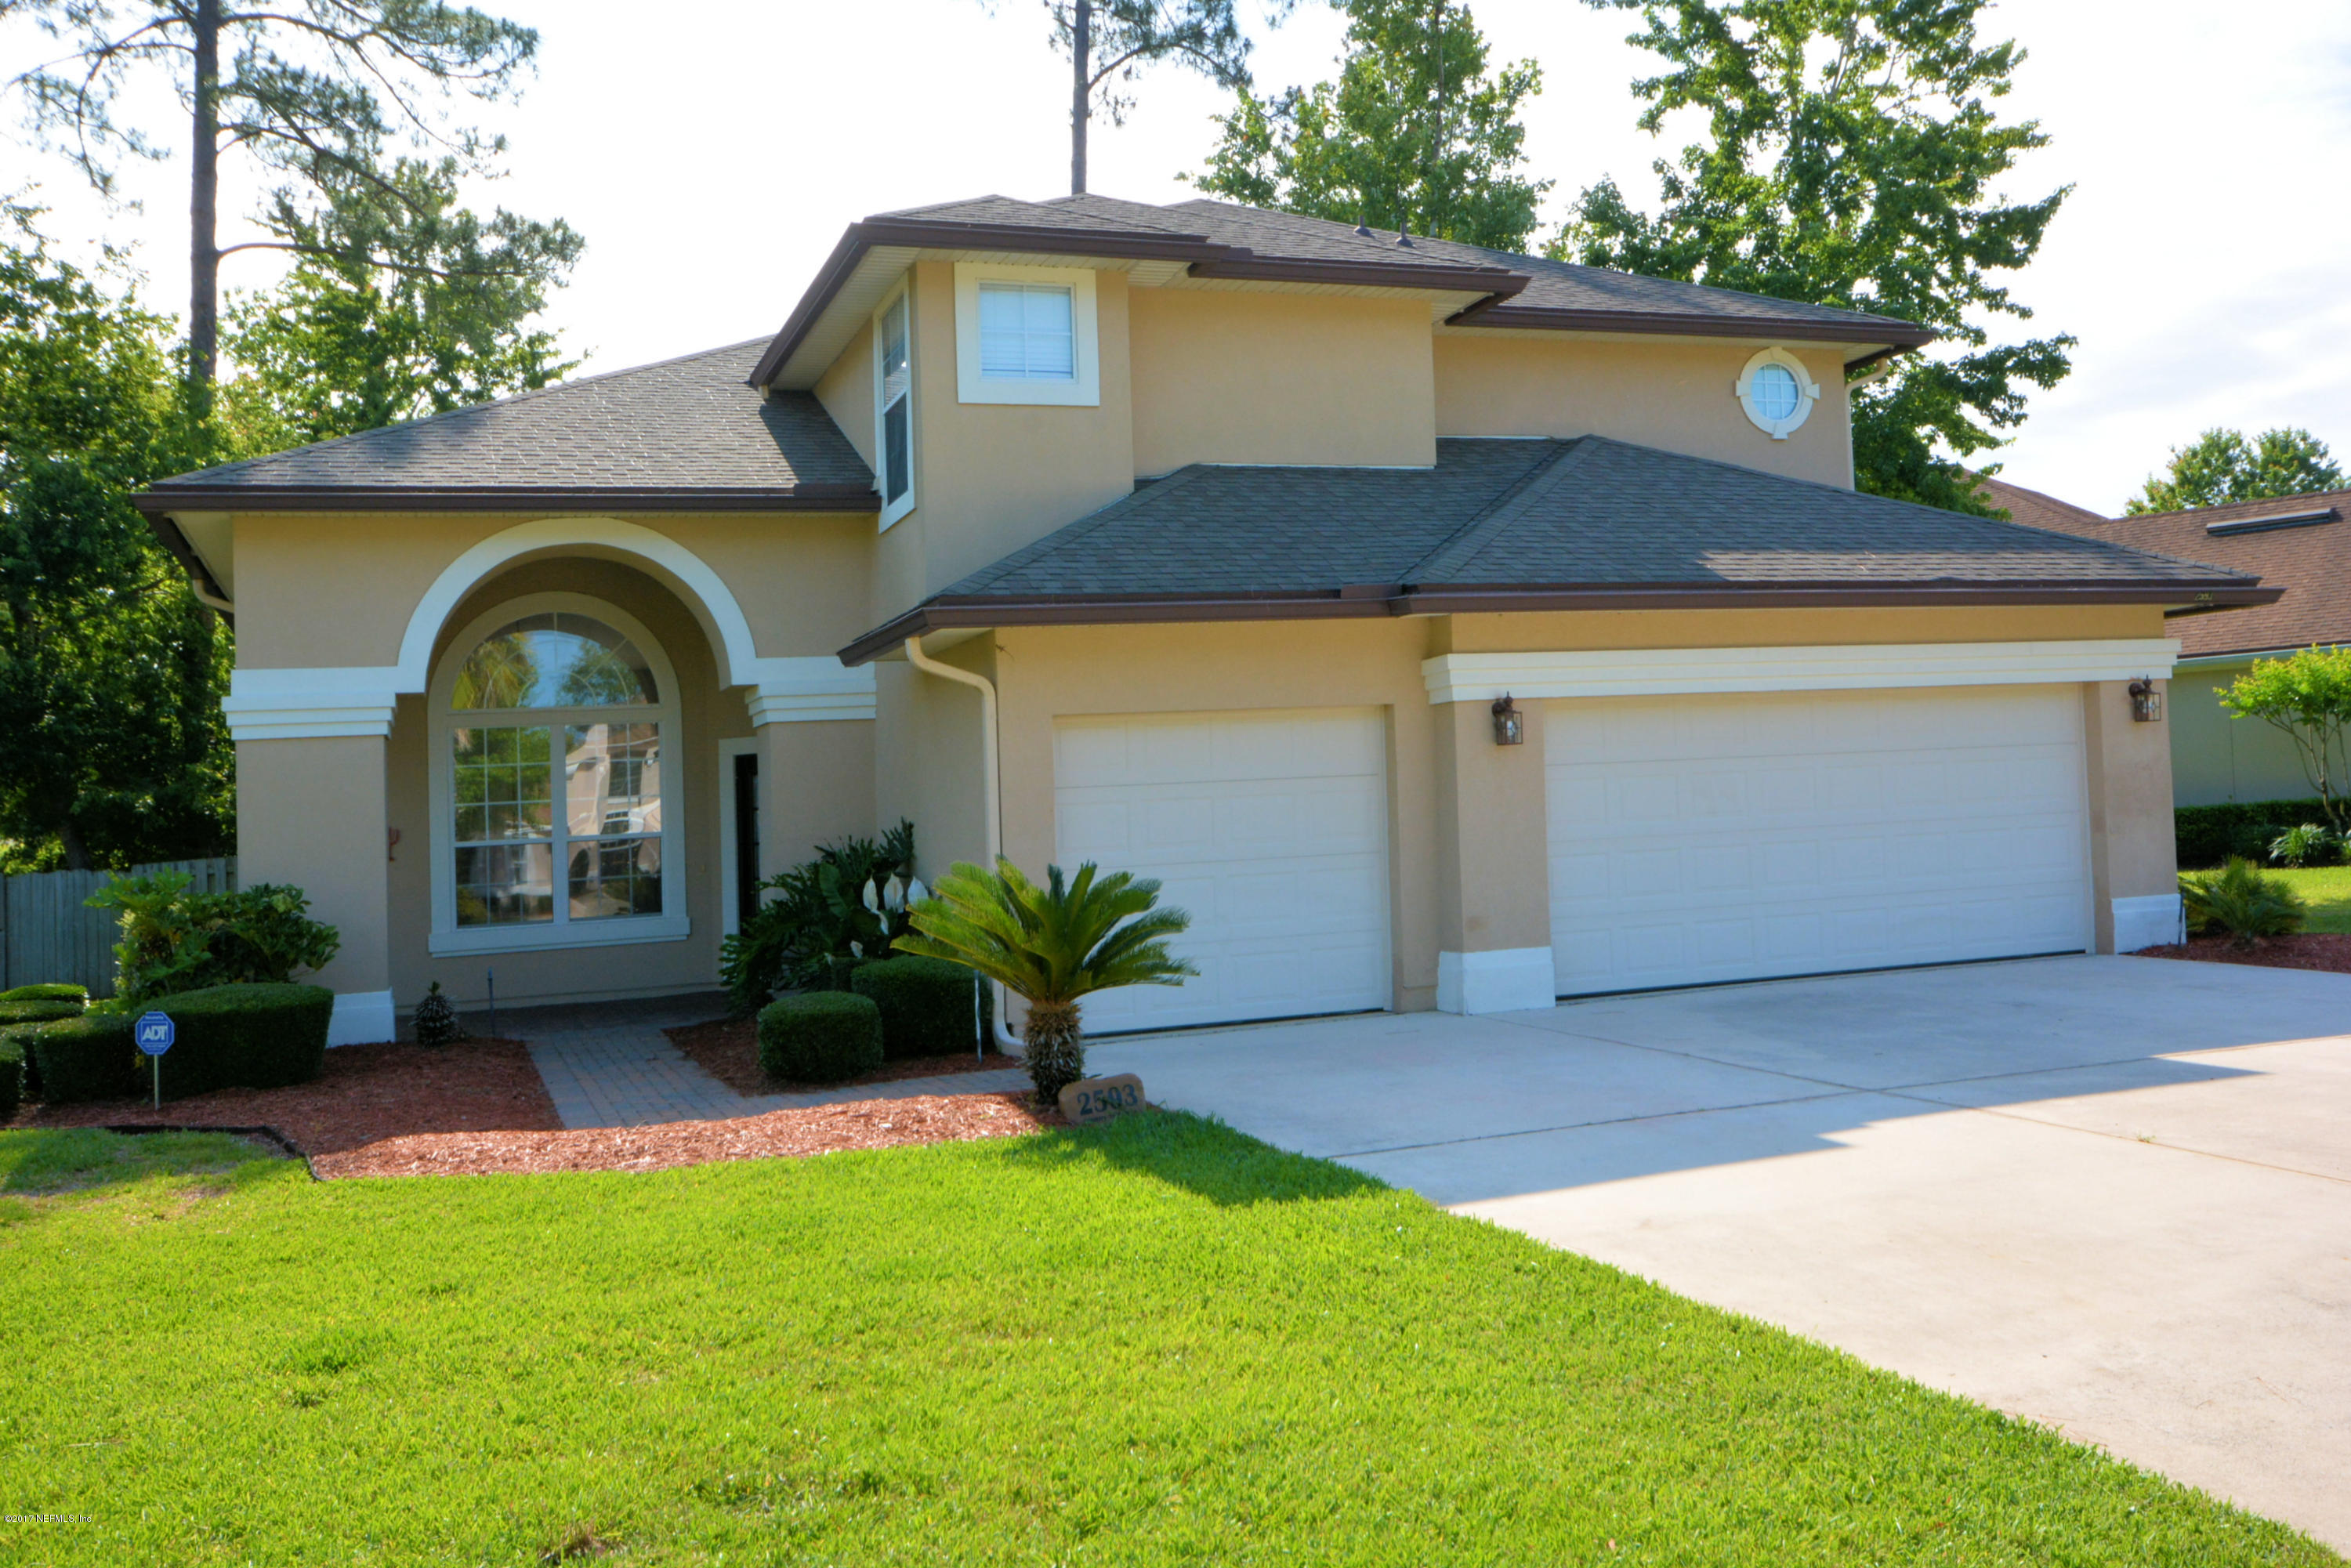 2593 COUNTRY SIDE, FLEMING ISLAND, FLORIDA 32003, 4 Bedrooms Bedrooms, ,3 BathroomsBathrooms,Residential - single family,For sale,COUNTRY SIDE,1010630